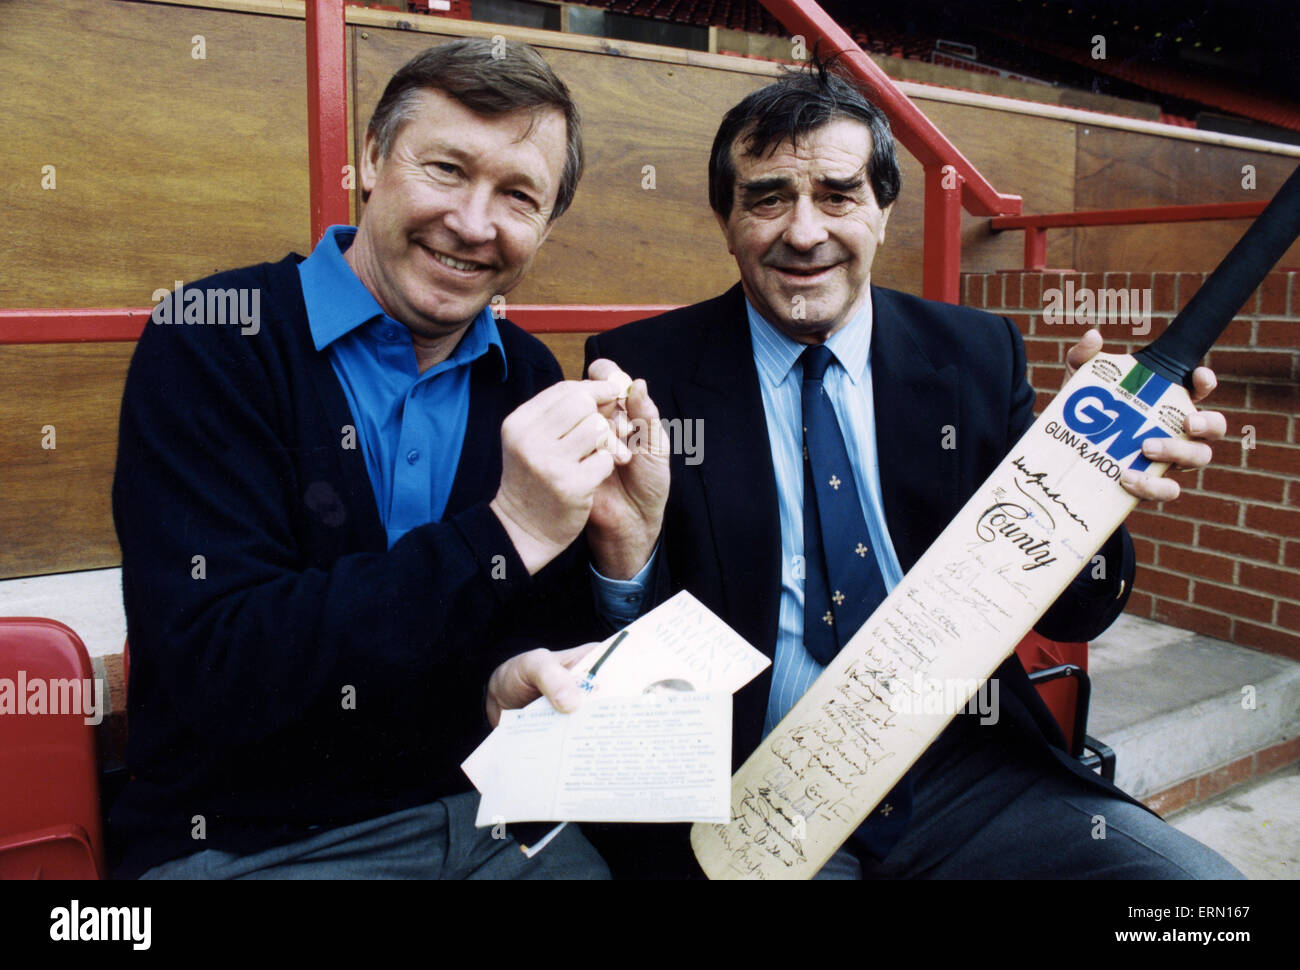 Manchester United manager Alex Ferguson with veteran cricketer Fred Truman at Old Trafford, posing with an autographed - Stock Image